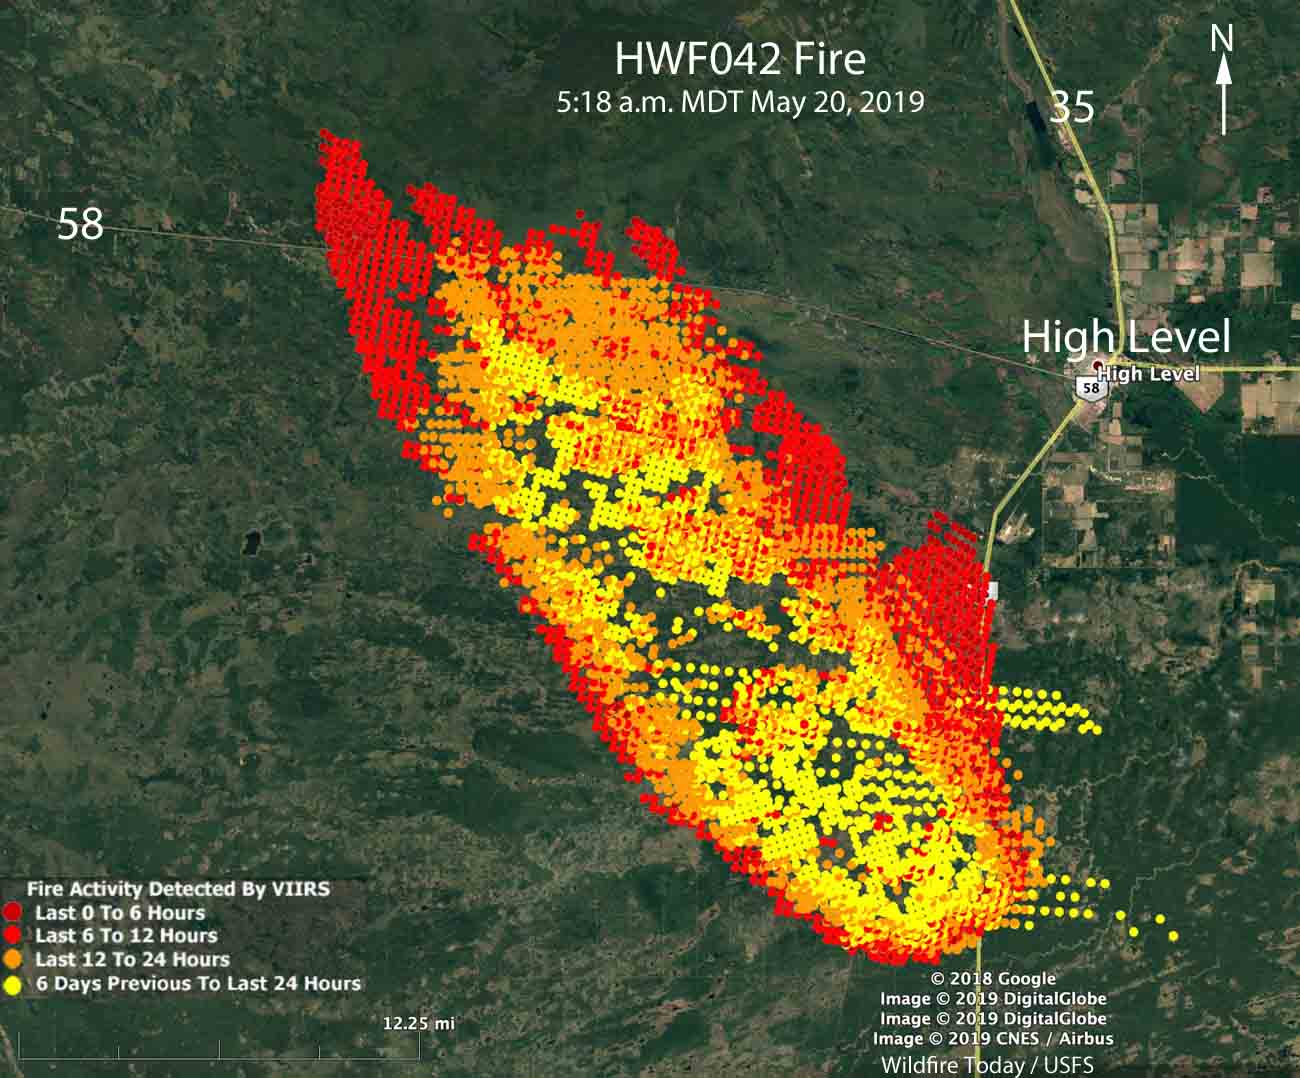 Alberta Wildfires Map Wildfire in Alberta burns more than 100,000 acres   Wildfire Today